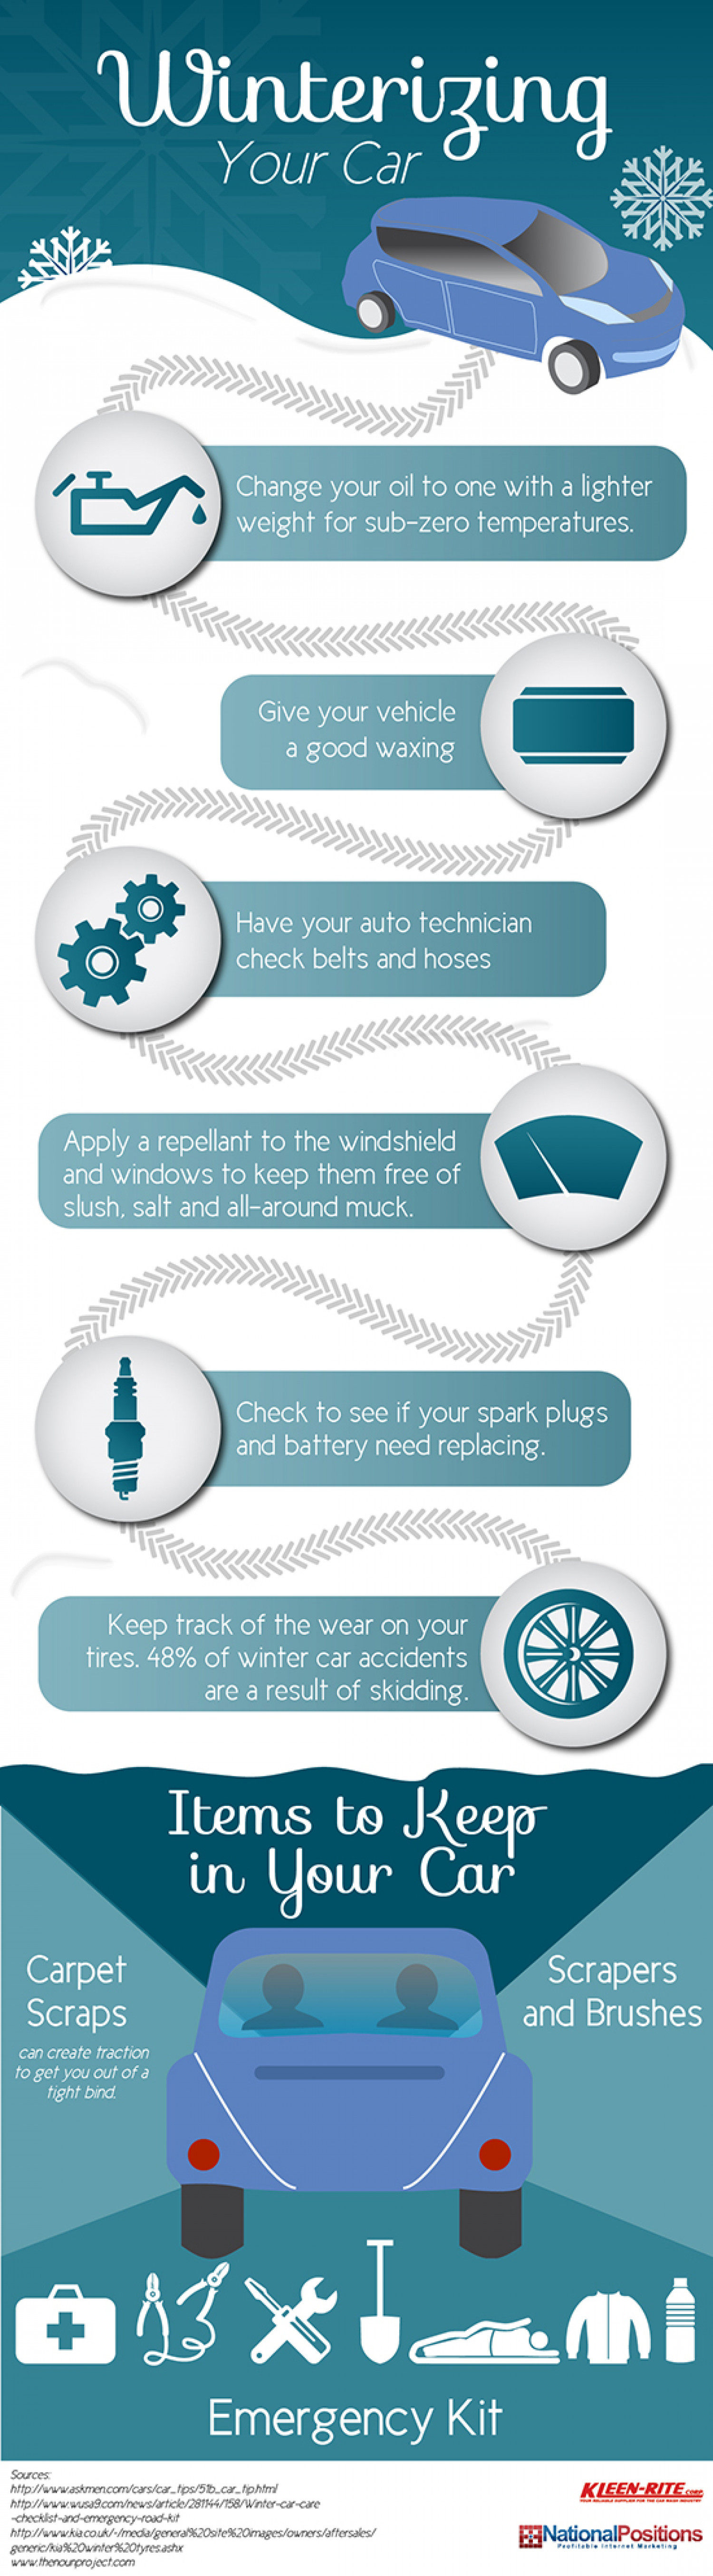 Winterizing Your Car Infographic